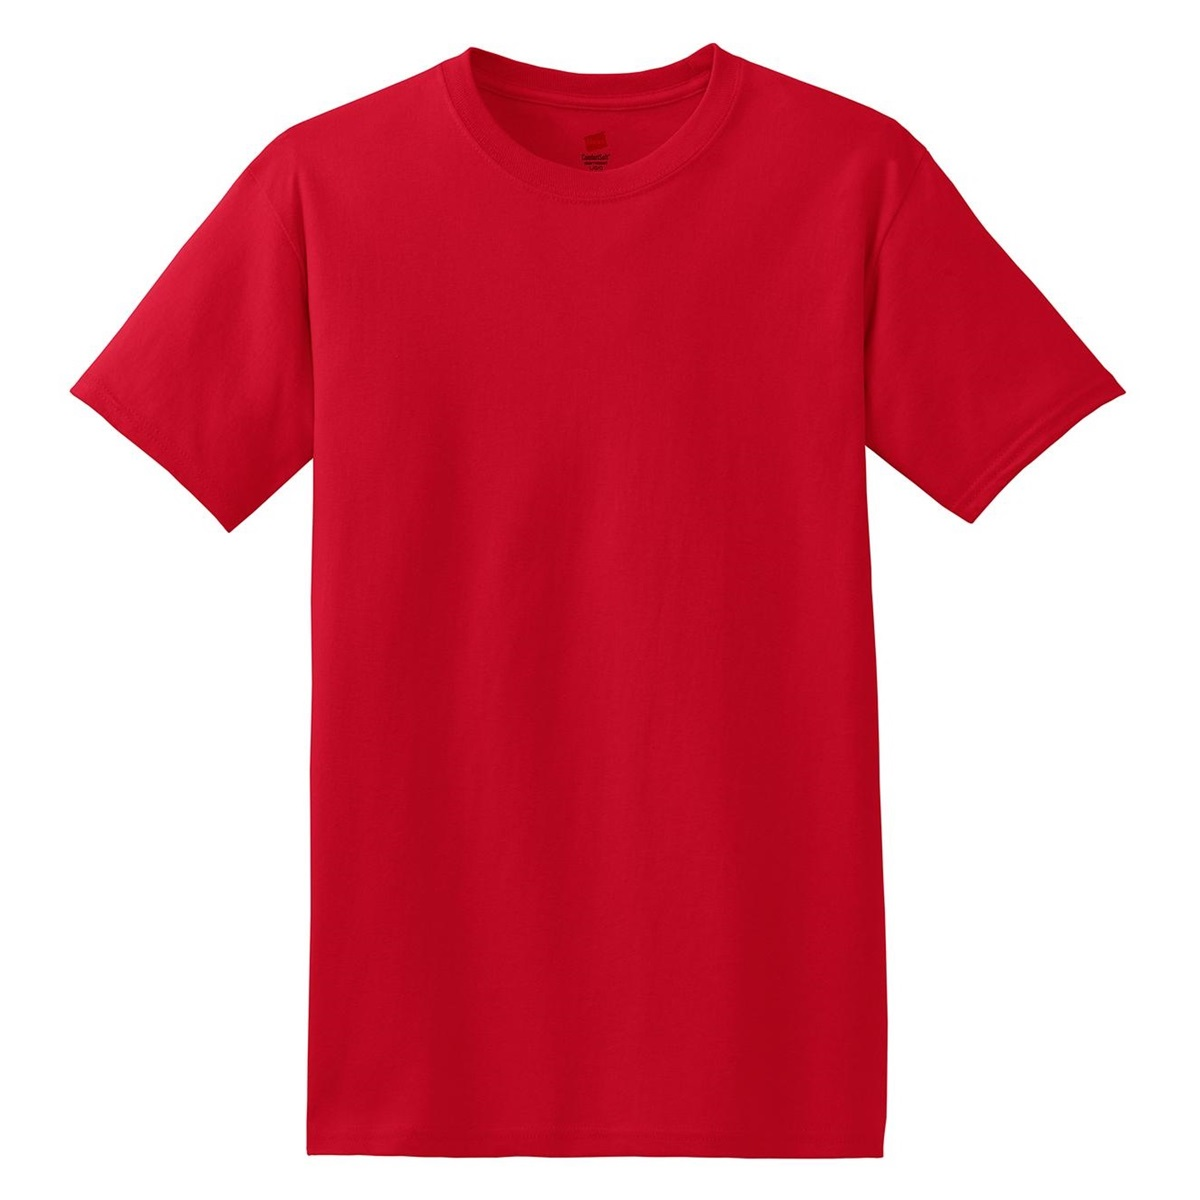 Red Color T-Shirts from Spreadshirt Unique designs Easy 30 day return policy Shop Red Color T-Shirts now!